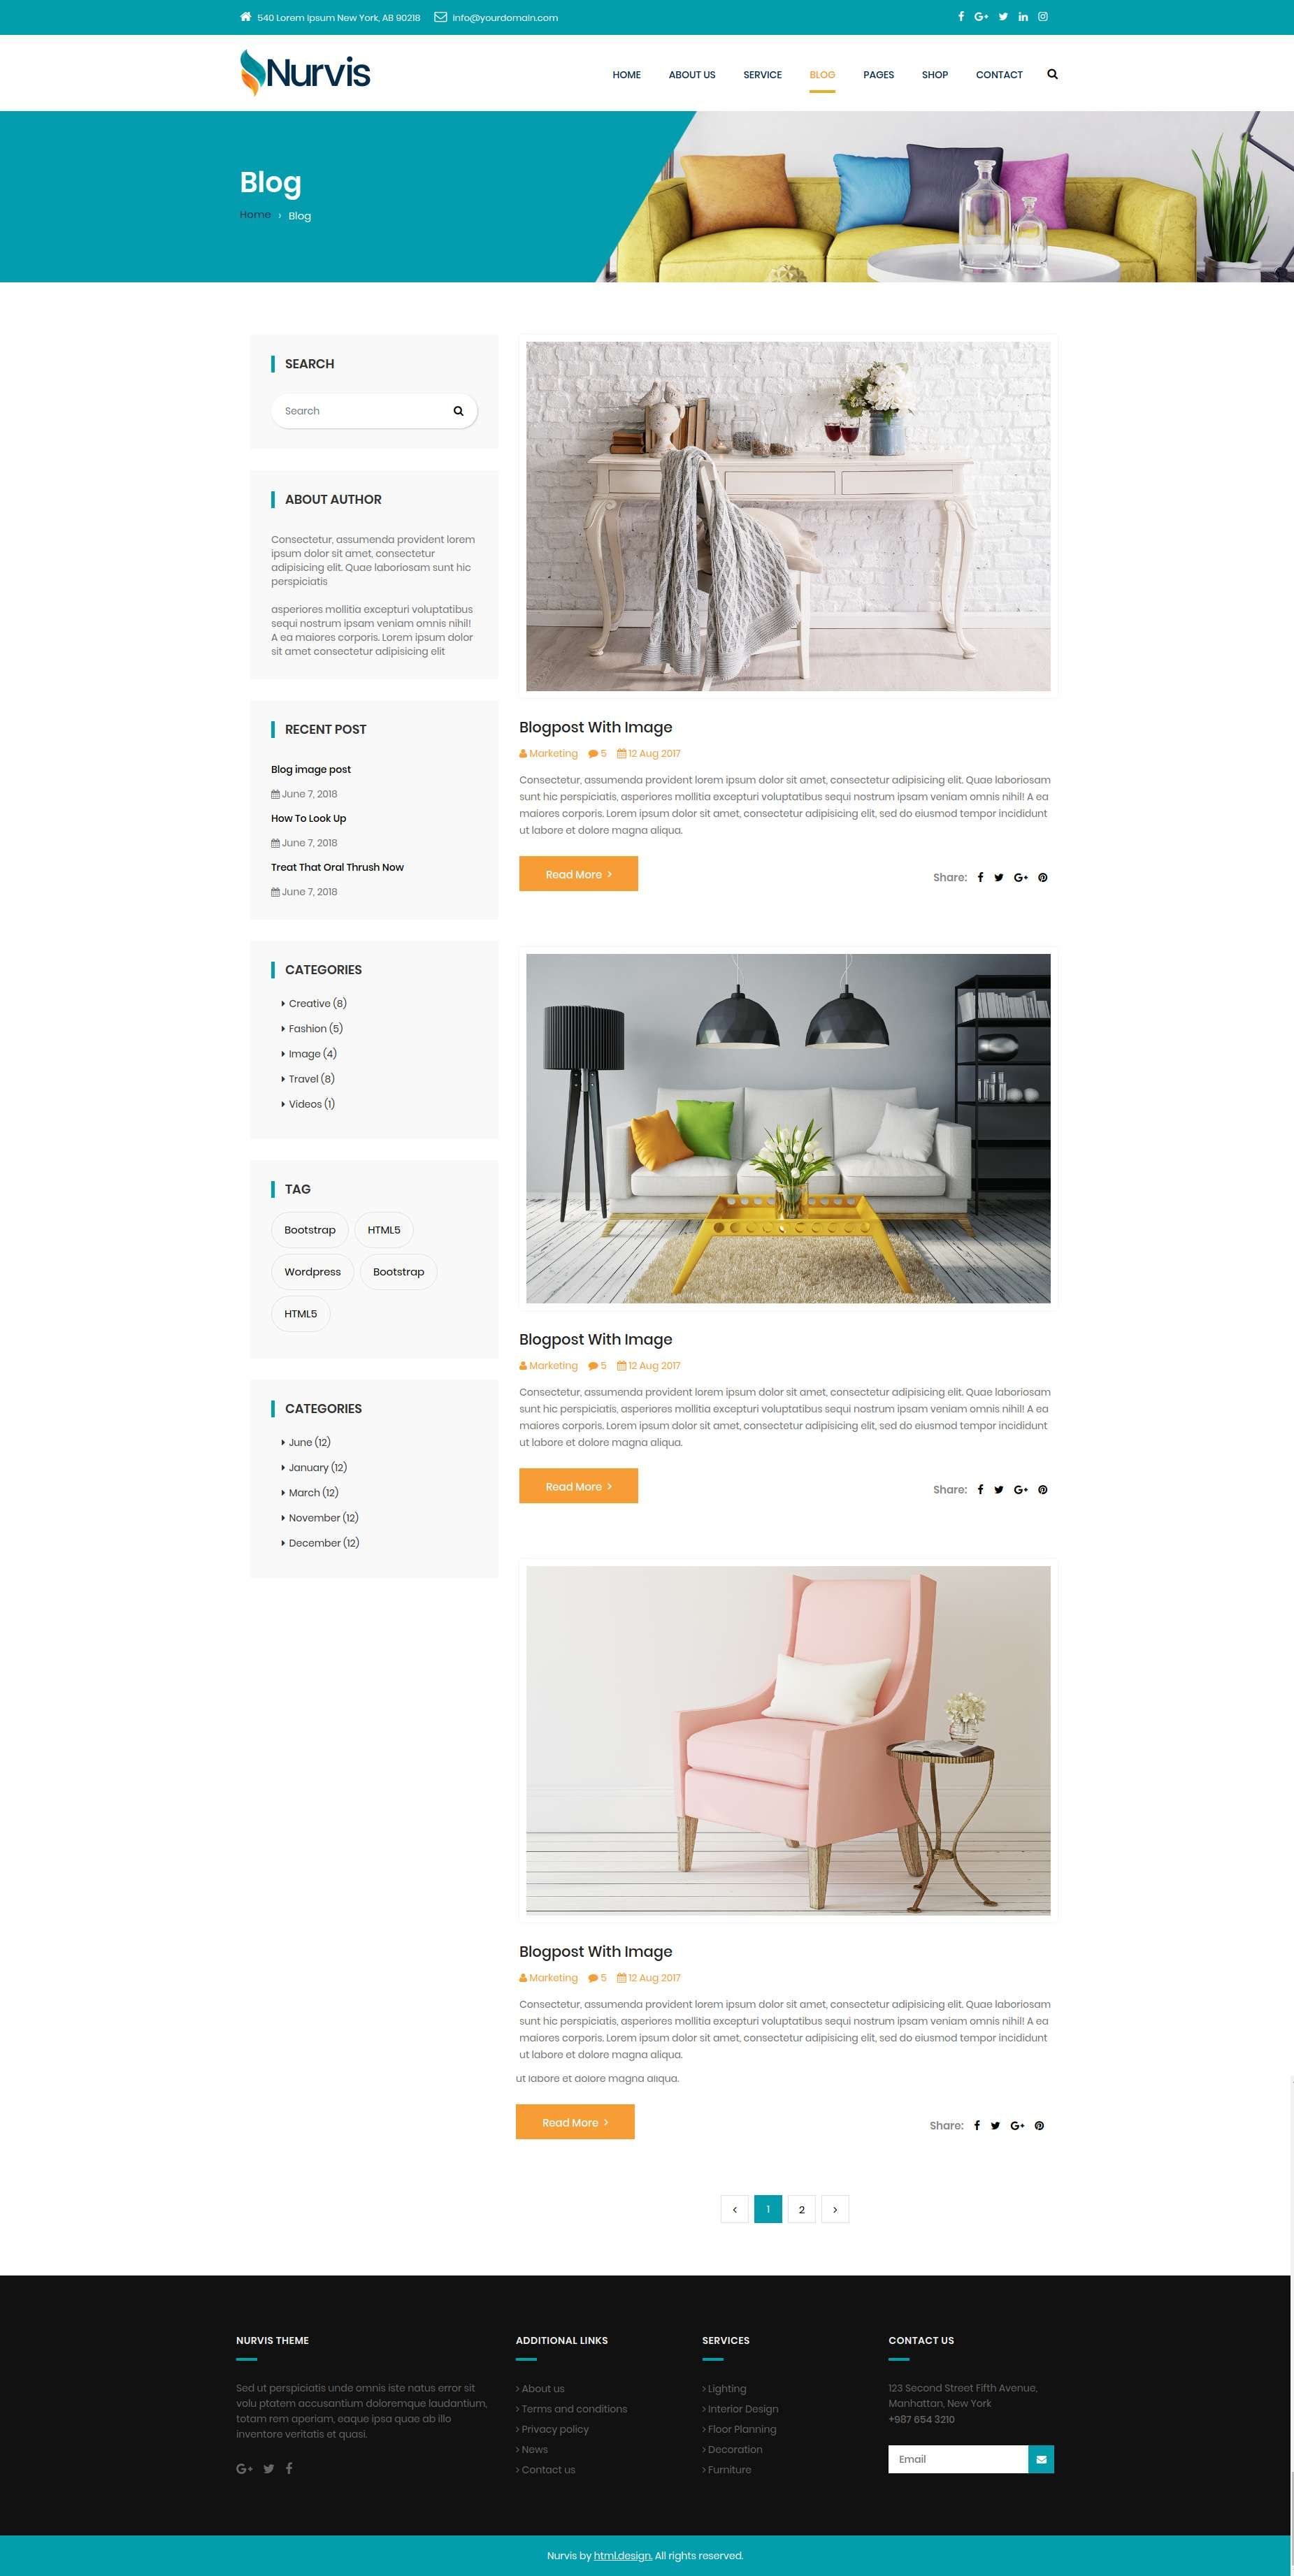 Nurvis - Furnitue Homestyle Bootstrap 4 Responsive HTML5